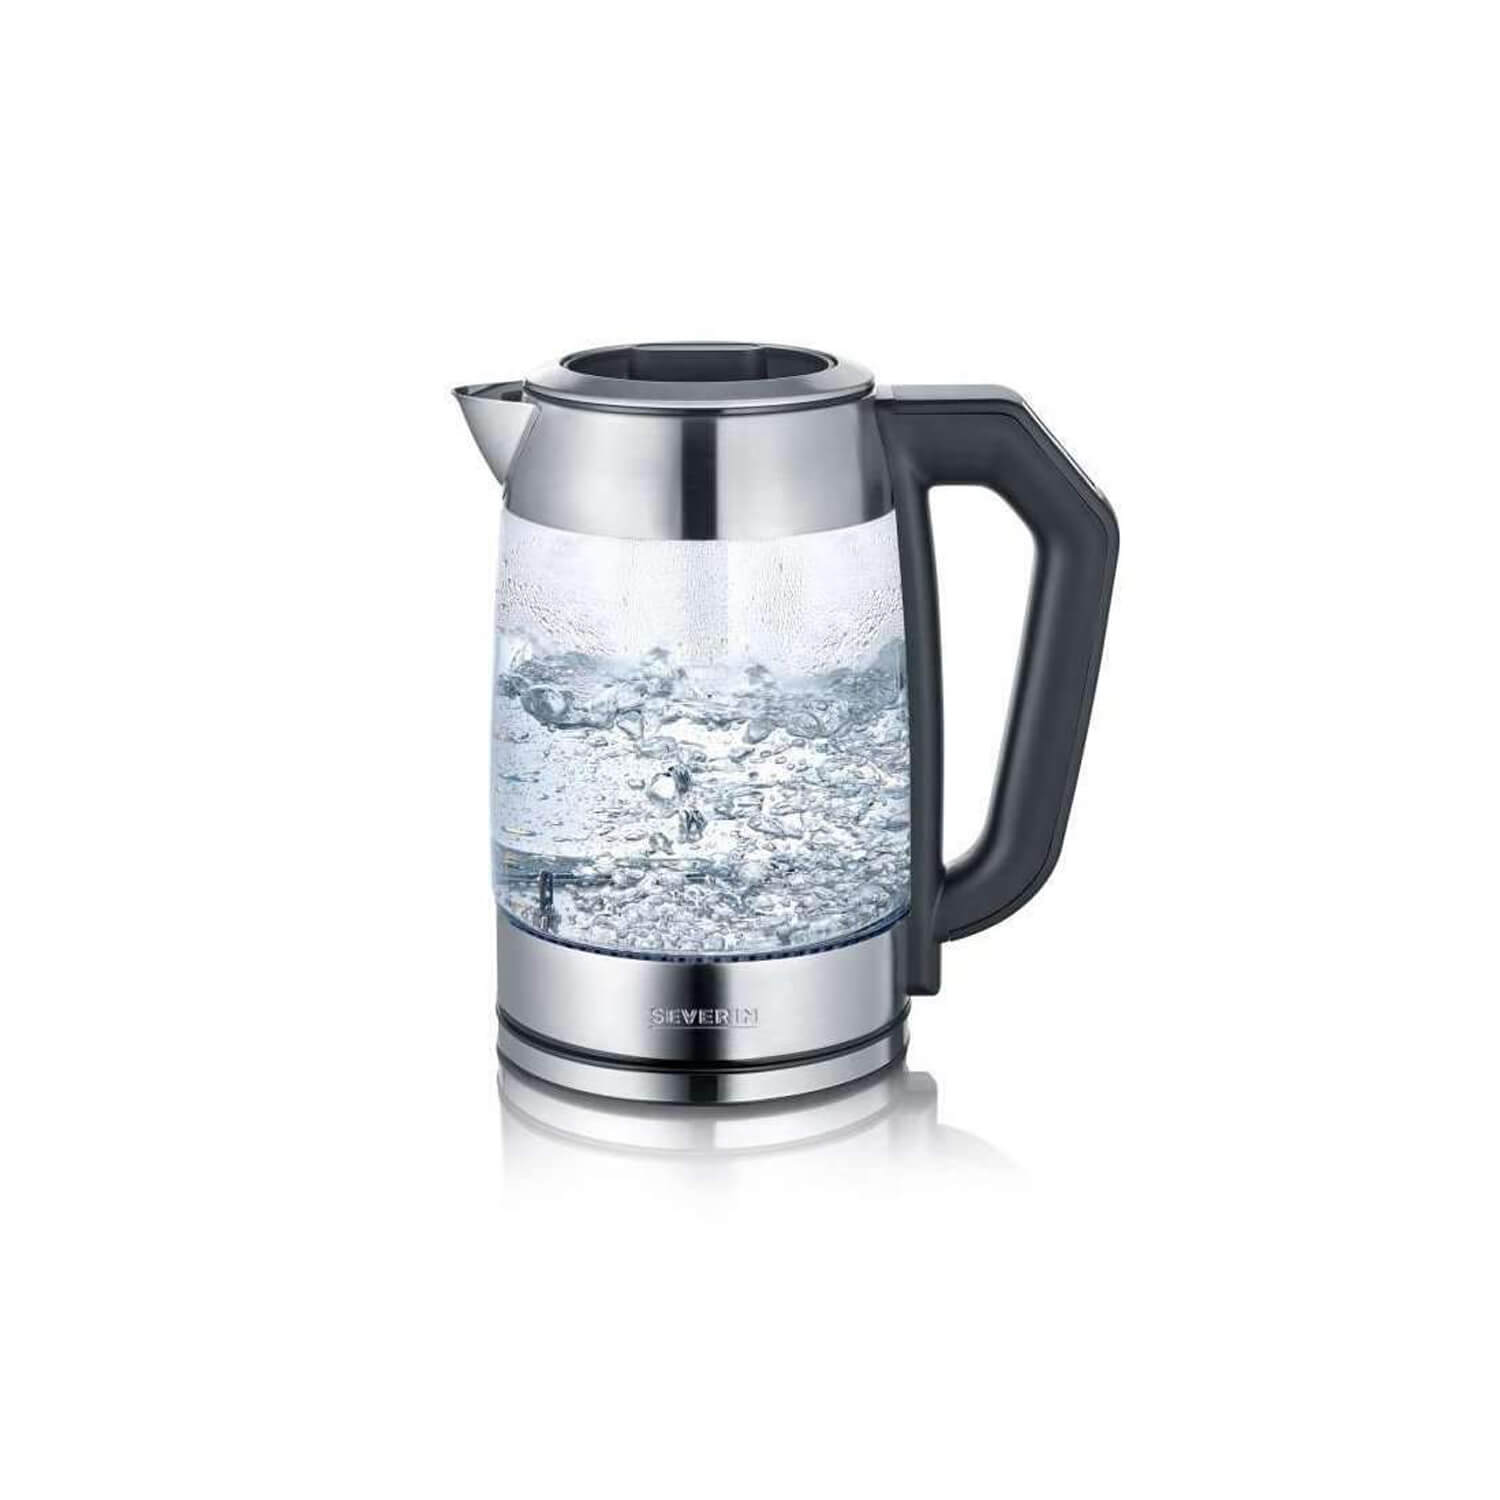 Severin - Wk 3479 Digital Glass Tea-Maker Deluxe